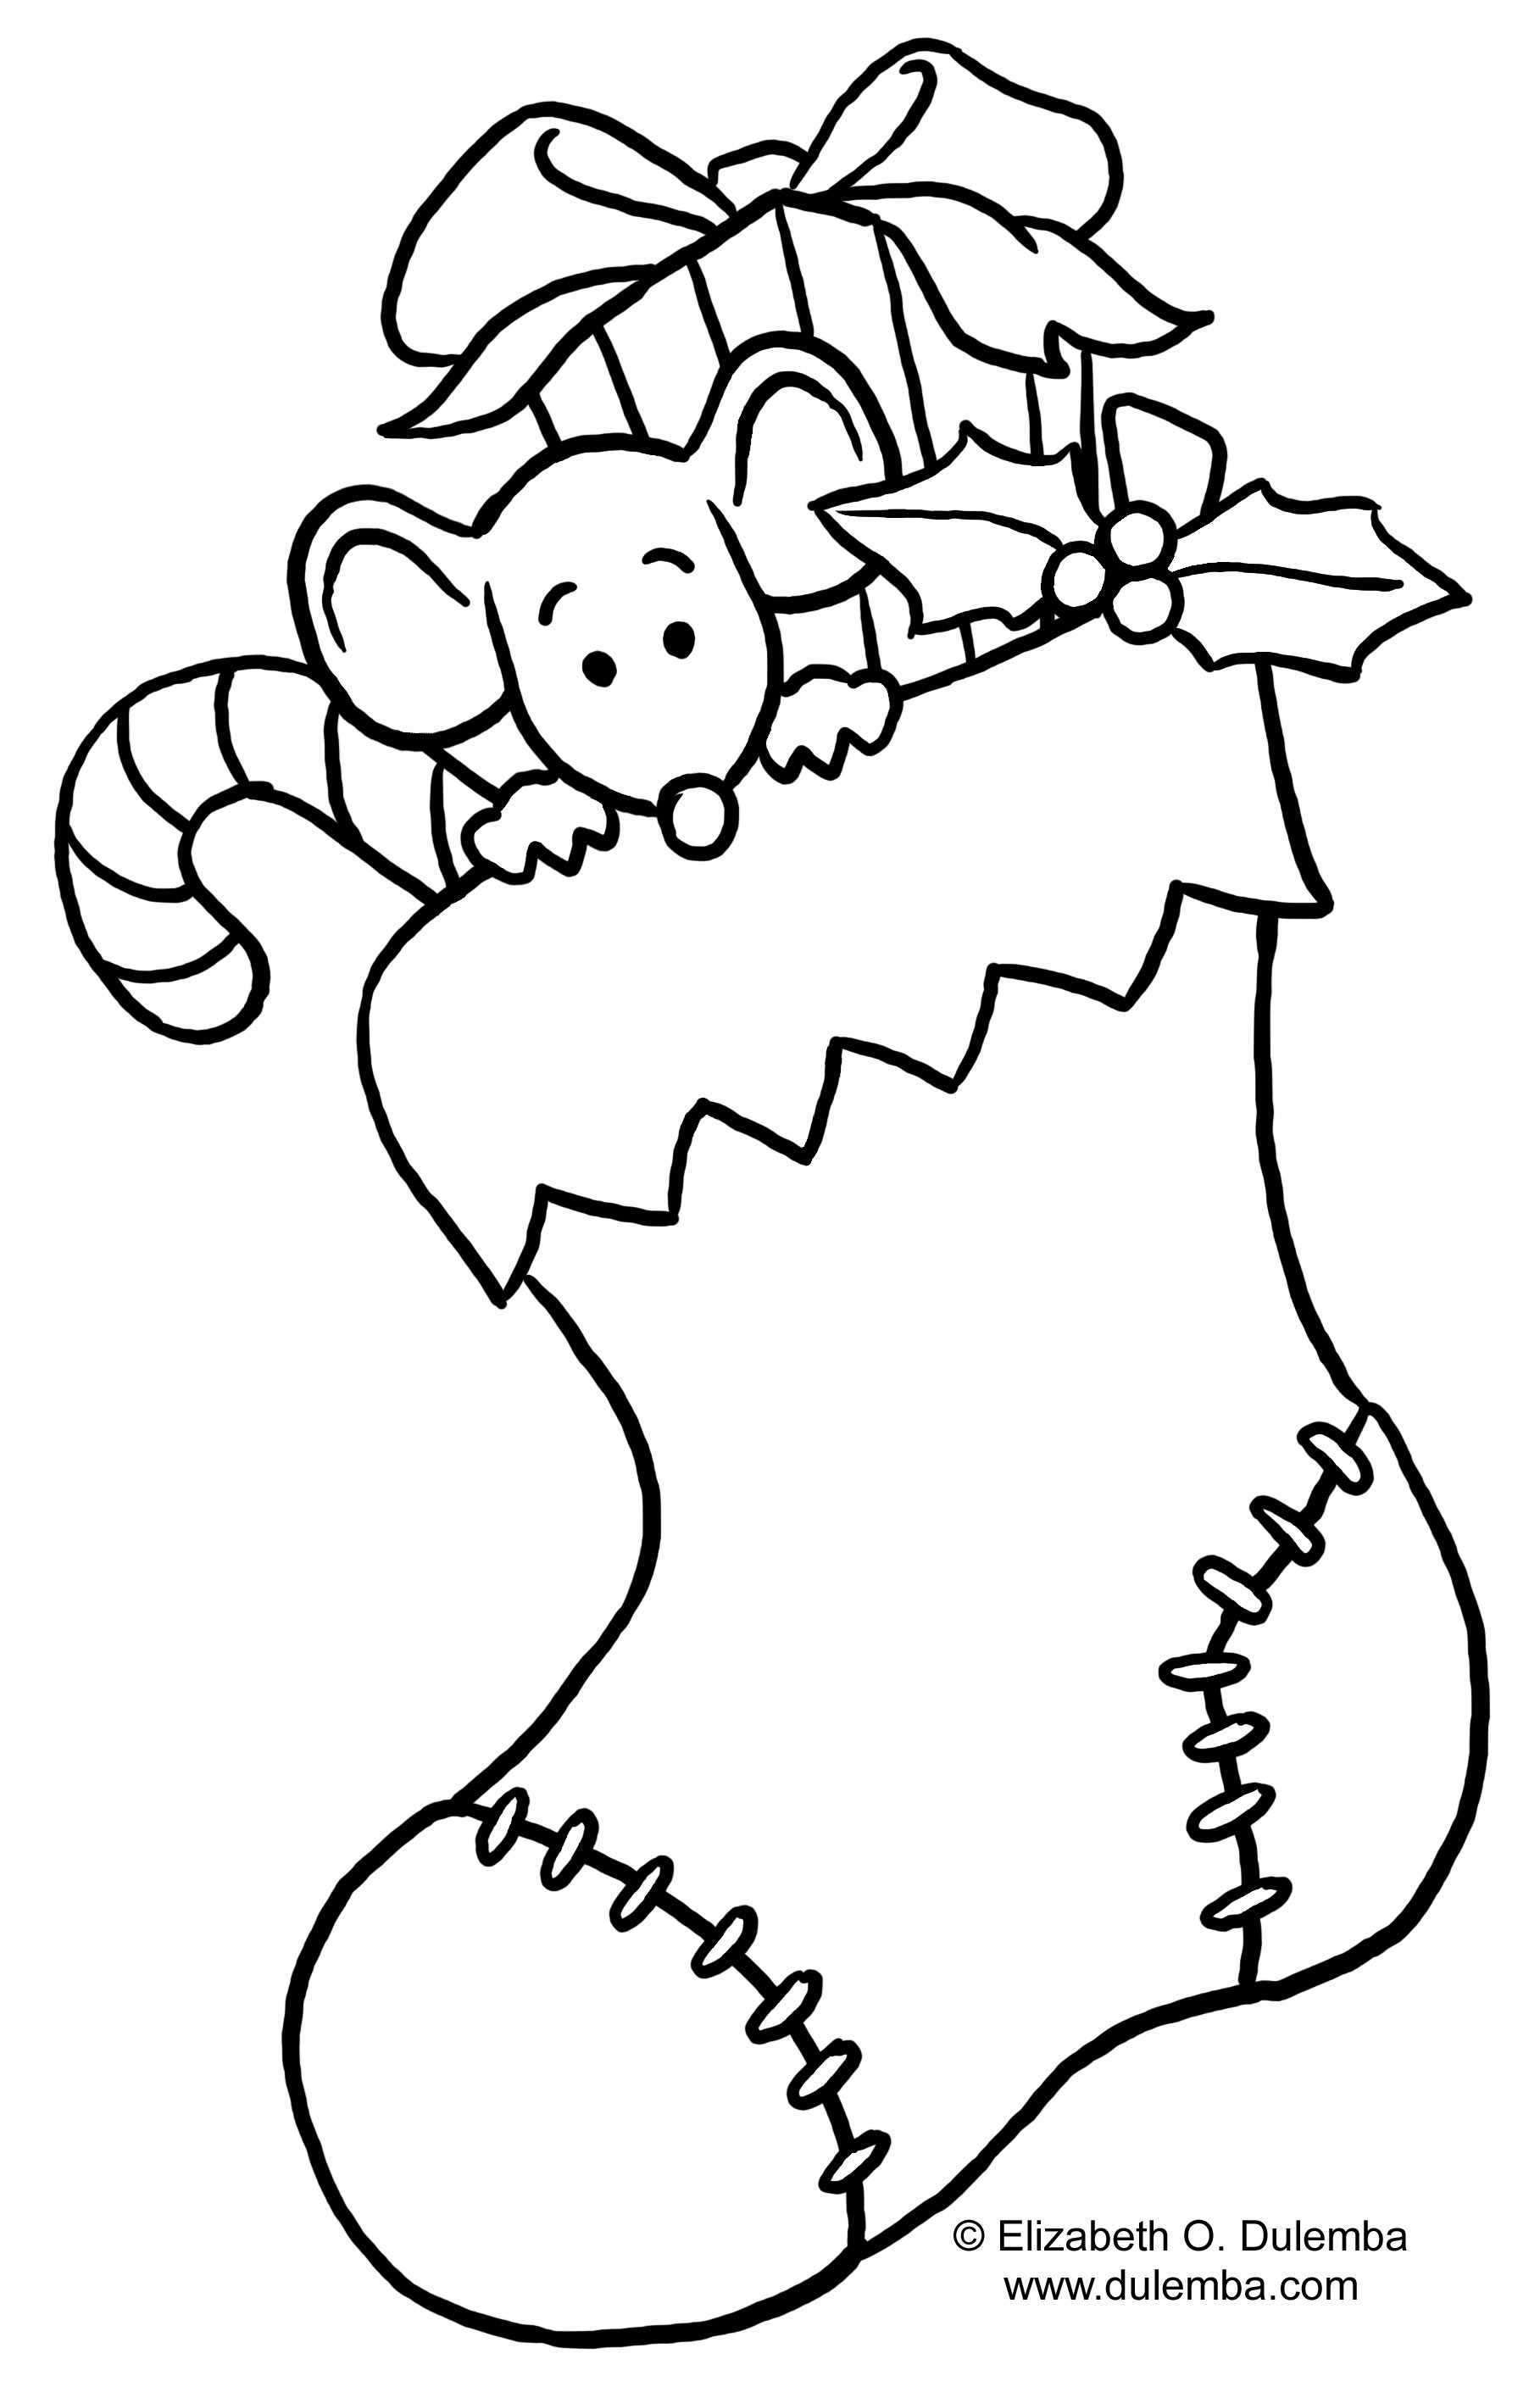 Christmas Colouring Pages For Kindergarten With Pengiun Coloring Crafts Toddlers